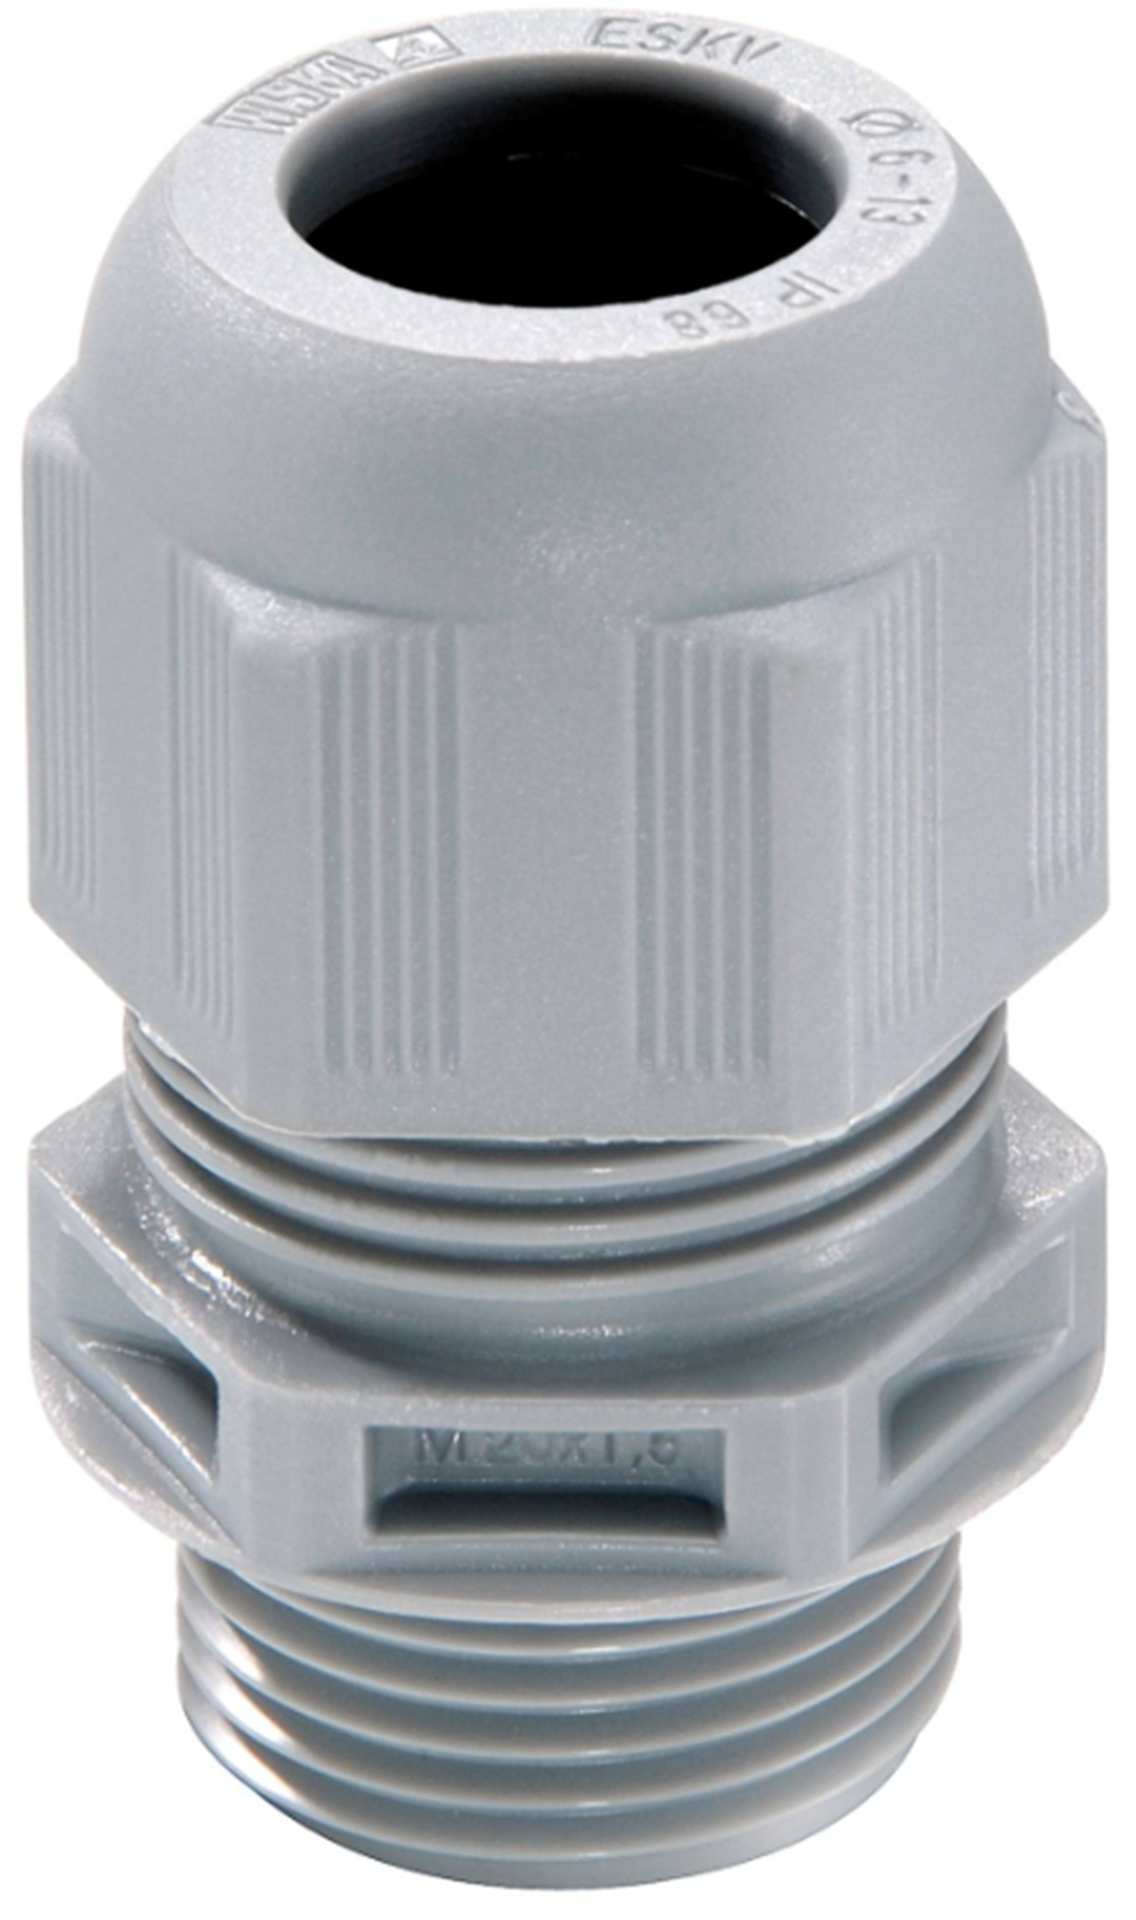 Wiska ESKV 20 PLUS Grey 10100824